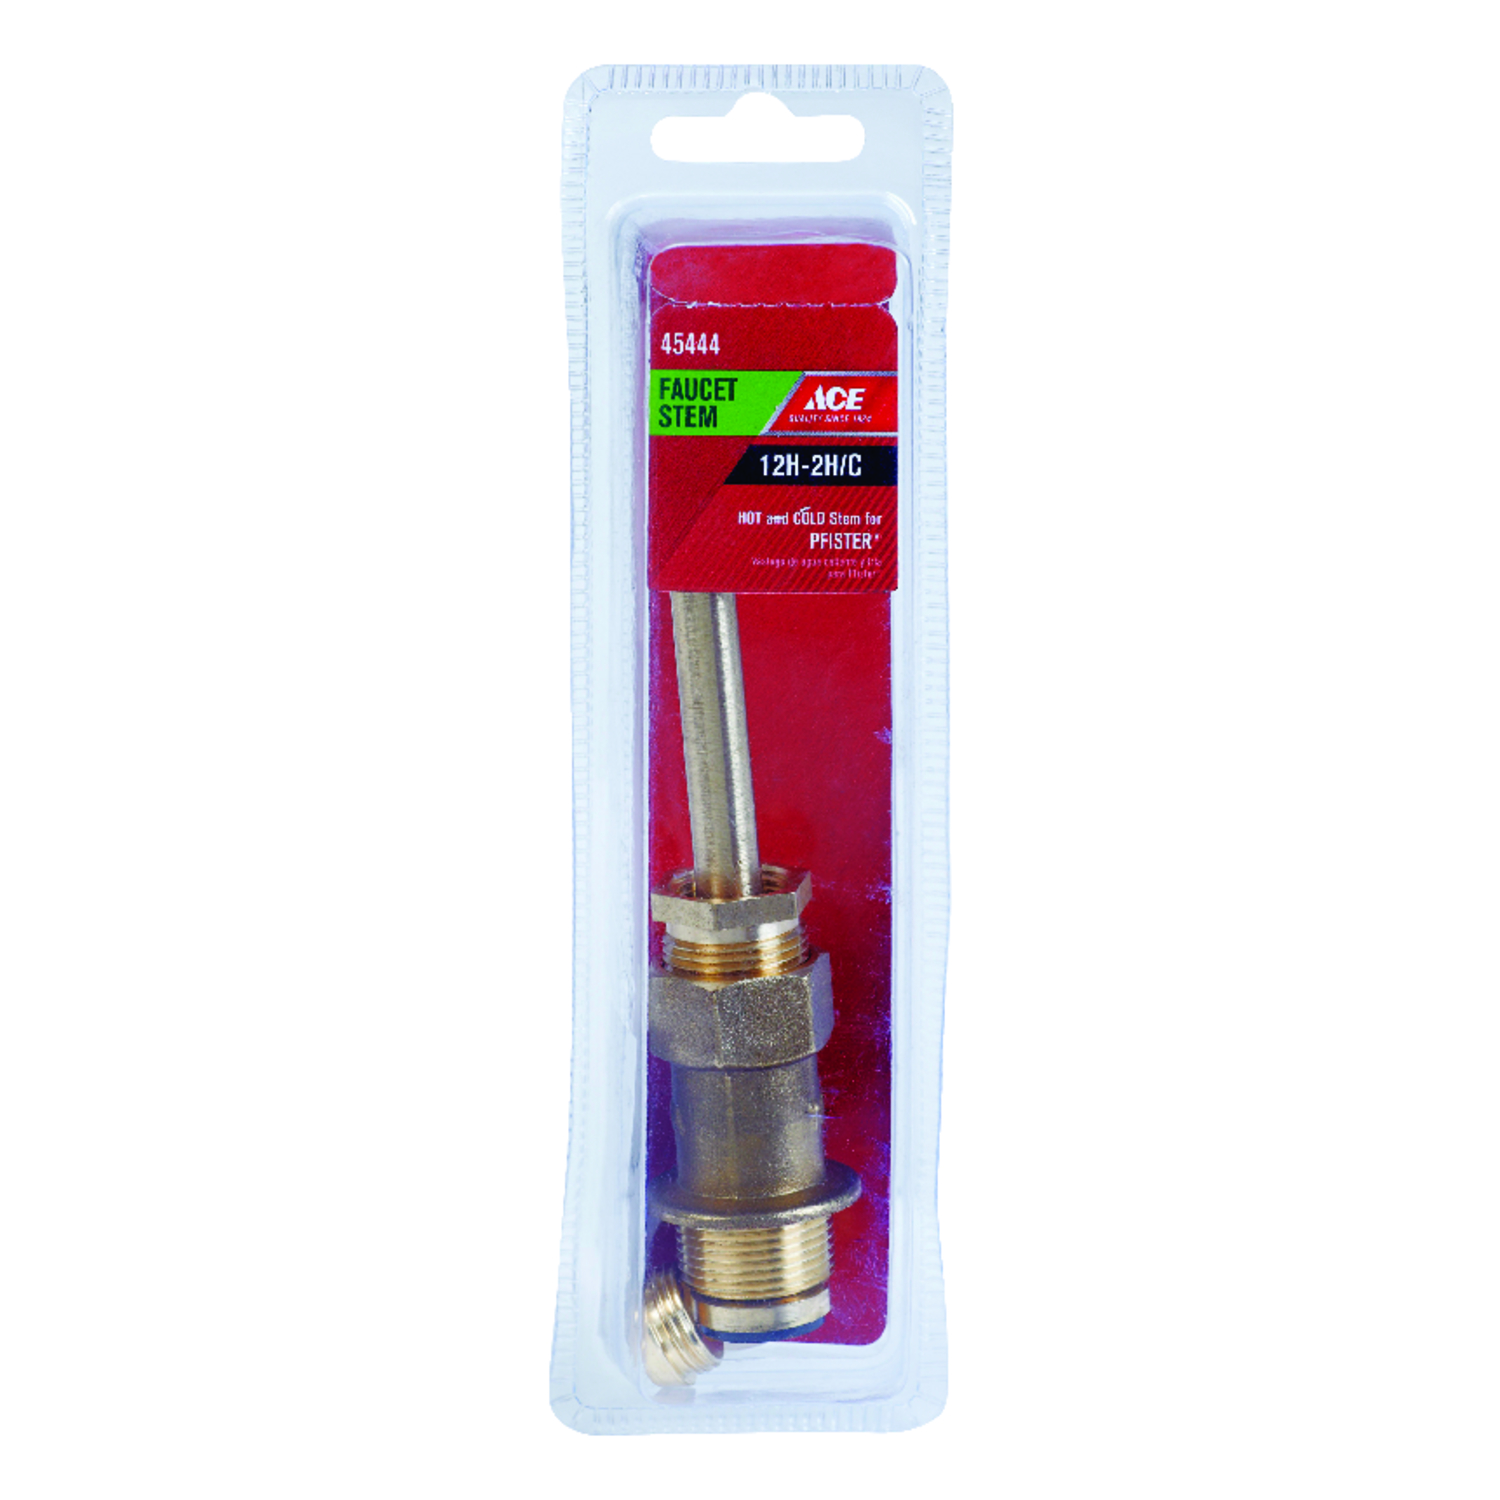 Ace  Hot and Cold  12H-2H/C  Faucet Stem  For Pfister